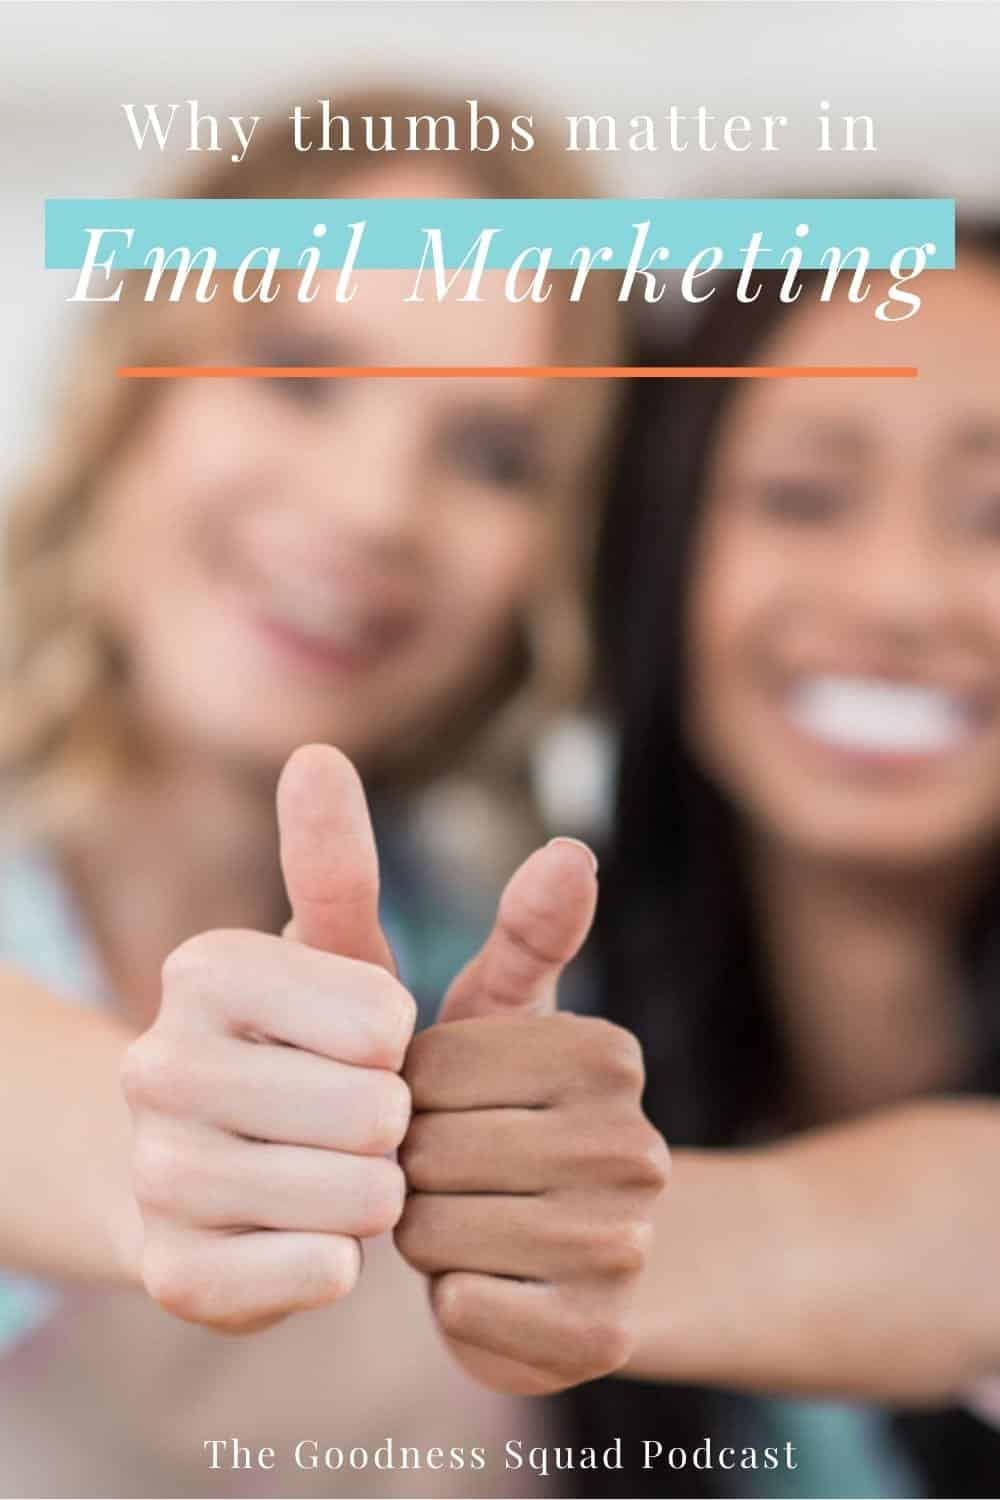 What thumbs have to do with email marketing